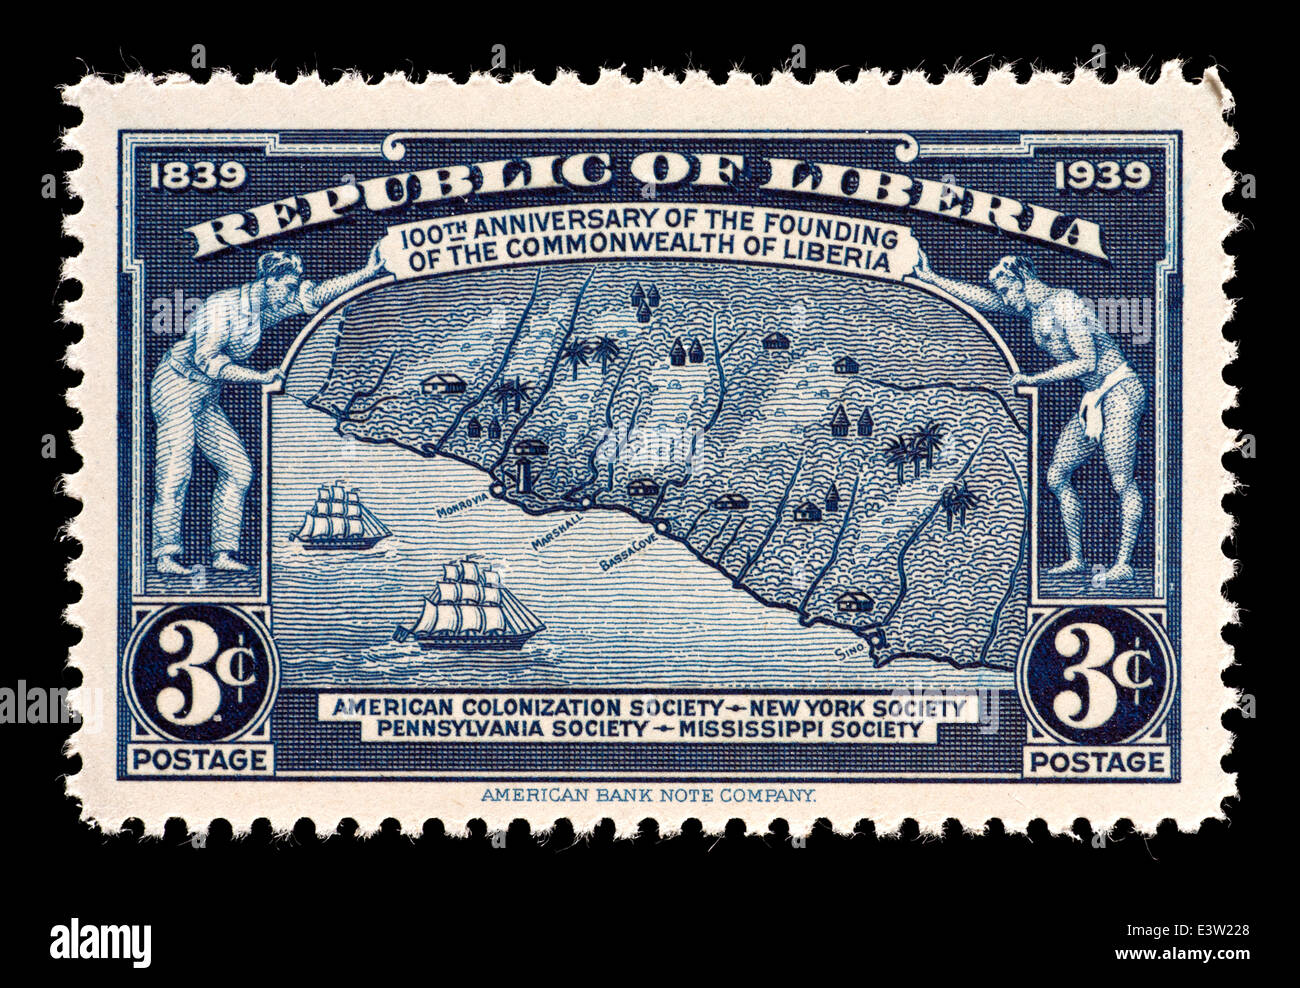 Postage stamp from Liberia depicting the coastline of Liberia, issued for the century of its founding. - Stock Image